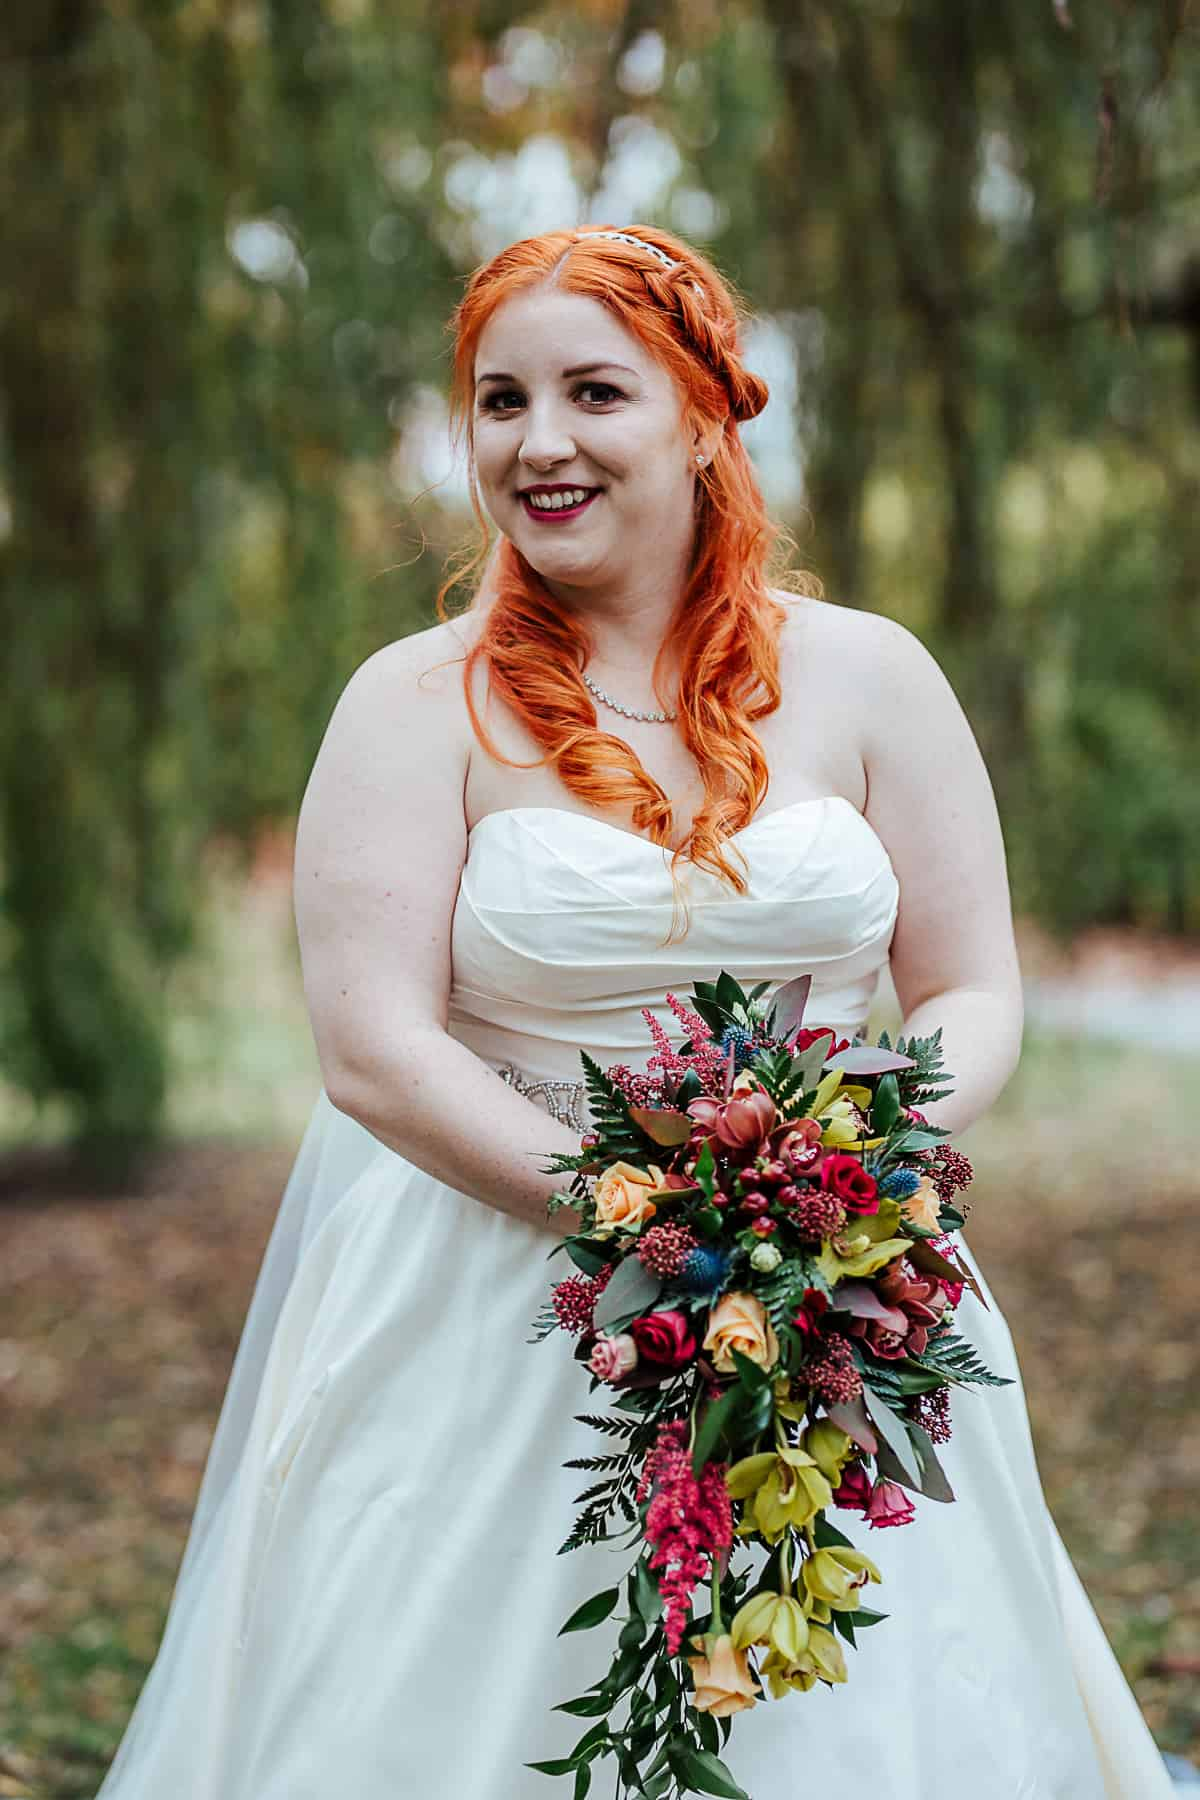 portrait of the bride fall wedding ideas red hair